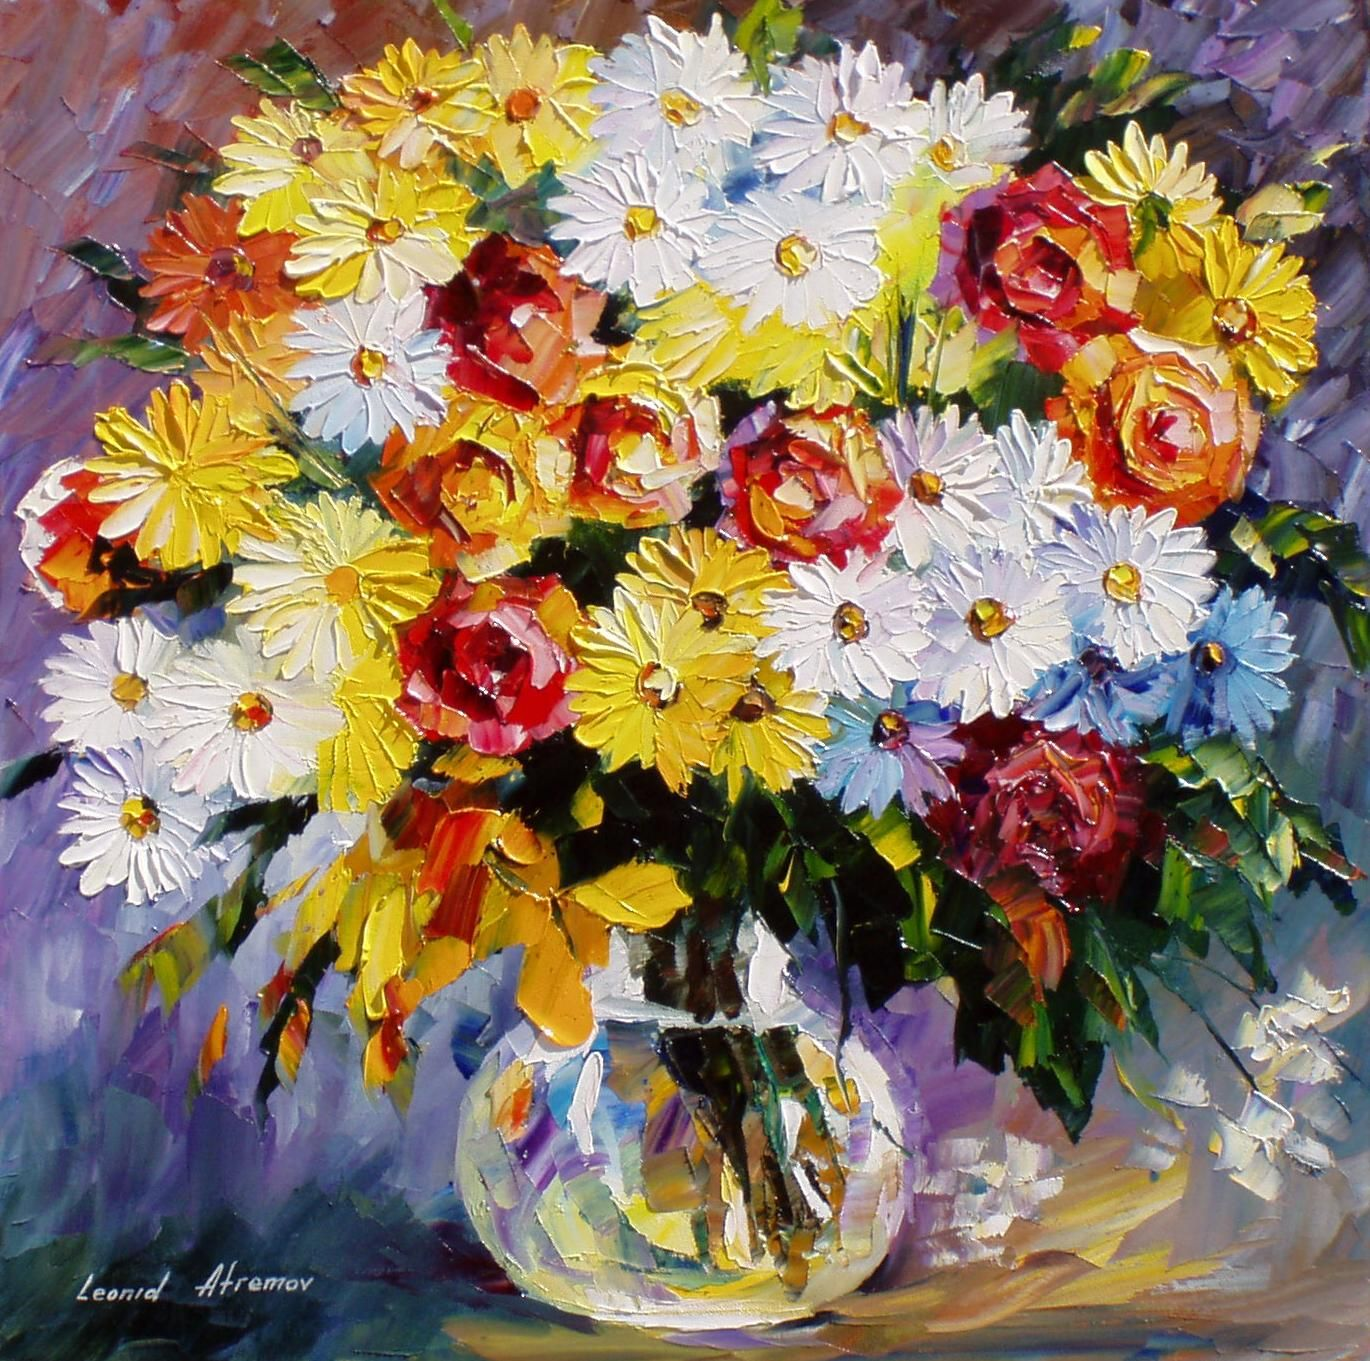 Morning-Flowers - PALETTE KNIFE Oil Painting On Canvas By Leonid Afremov - http://afremov.com/Morning-Flowers-PALETTE-KNIFE-Oil-Painting-On-Canvas-By-Leonid-Afremov-Size-24-W-x-24-H-SKU207363.html?utm_source=s-pinterest&utm_medium=/afremov_usa&utm_campaign=ADD-YOUR